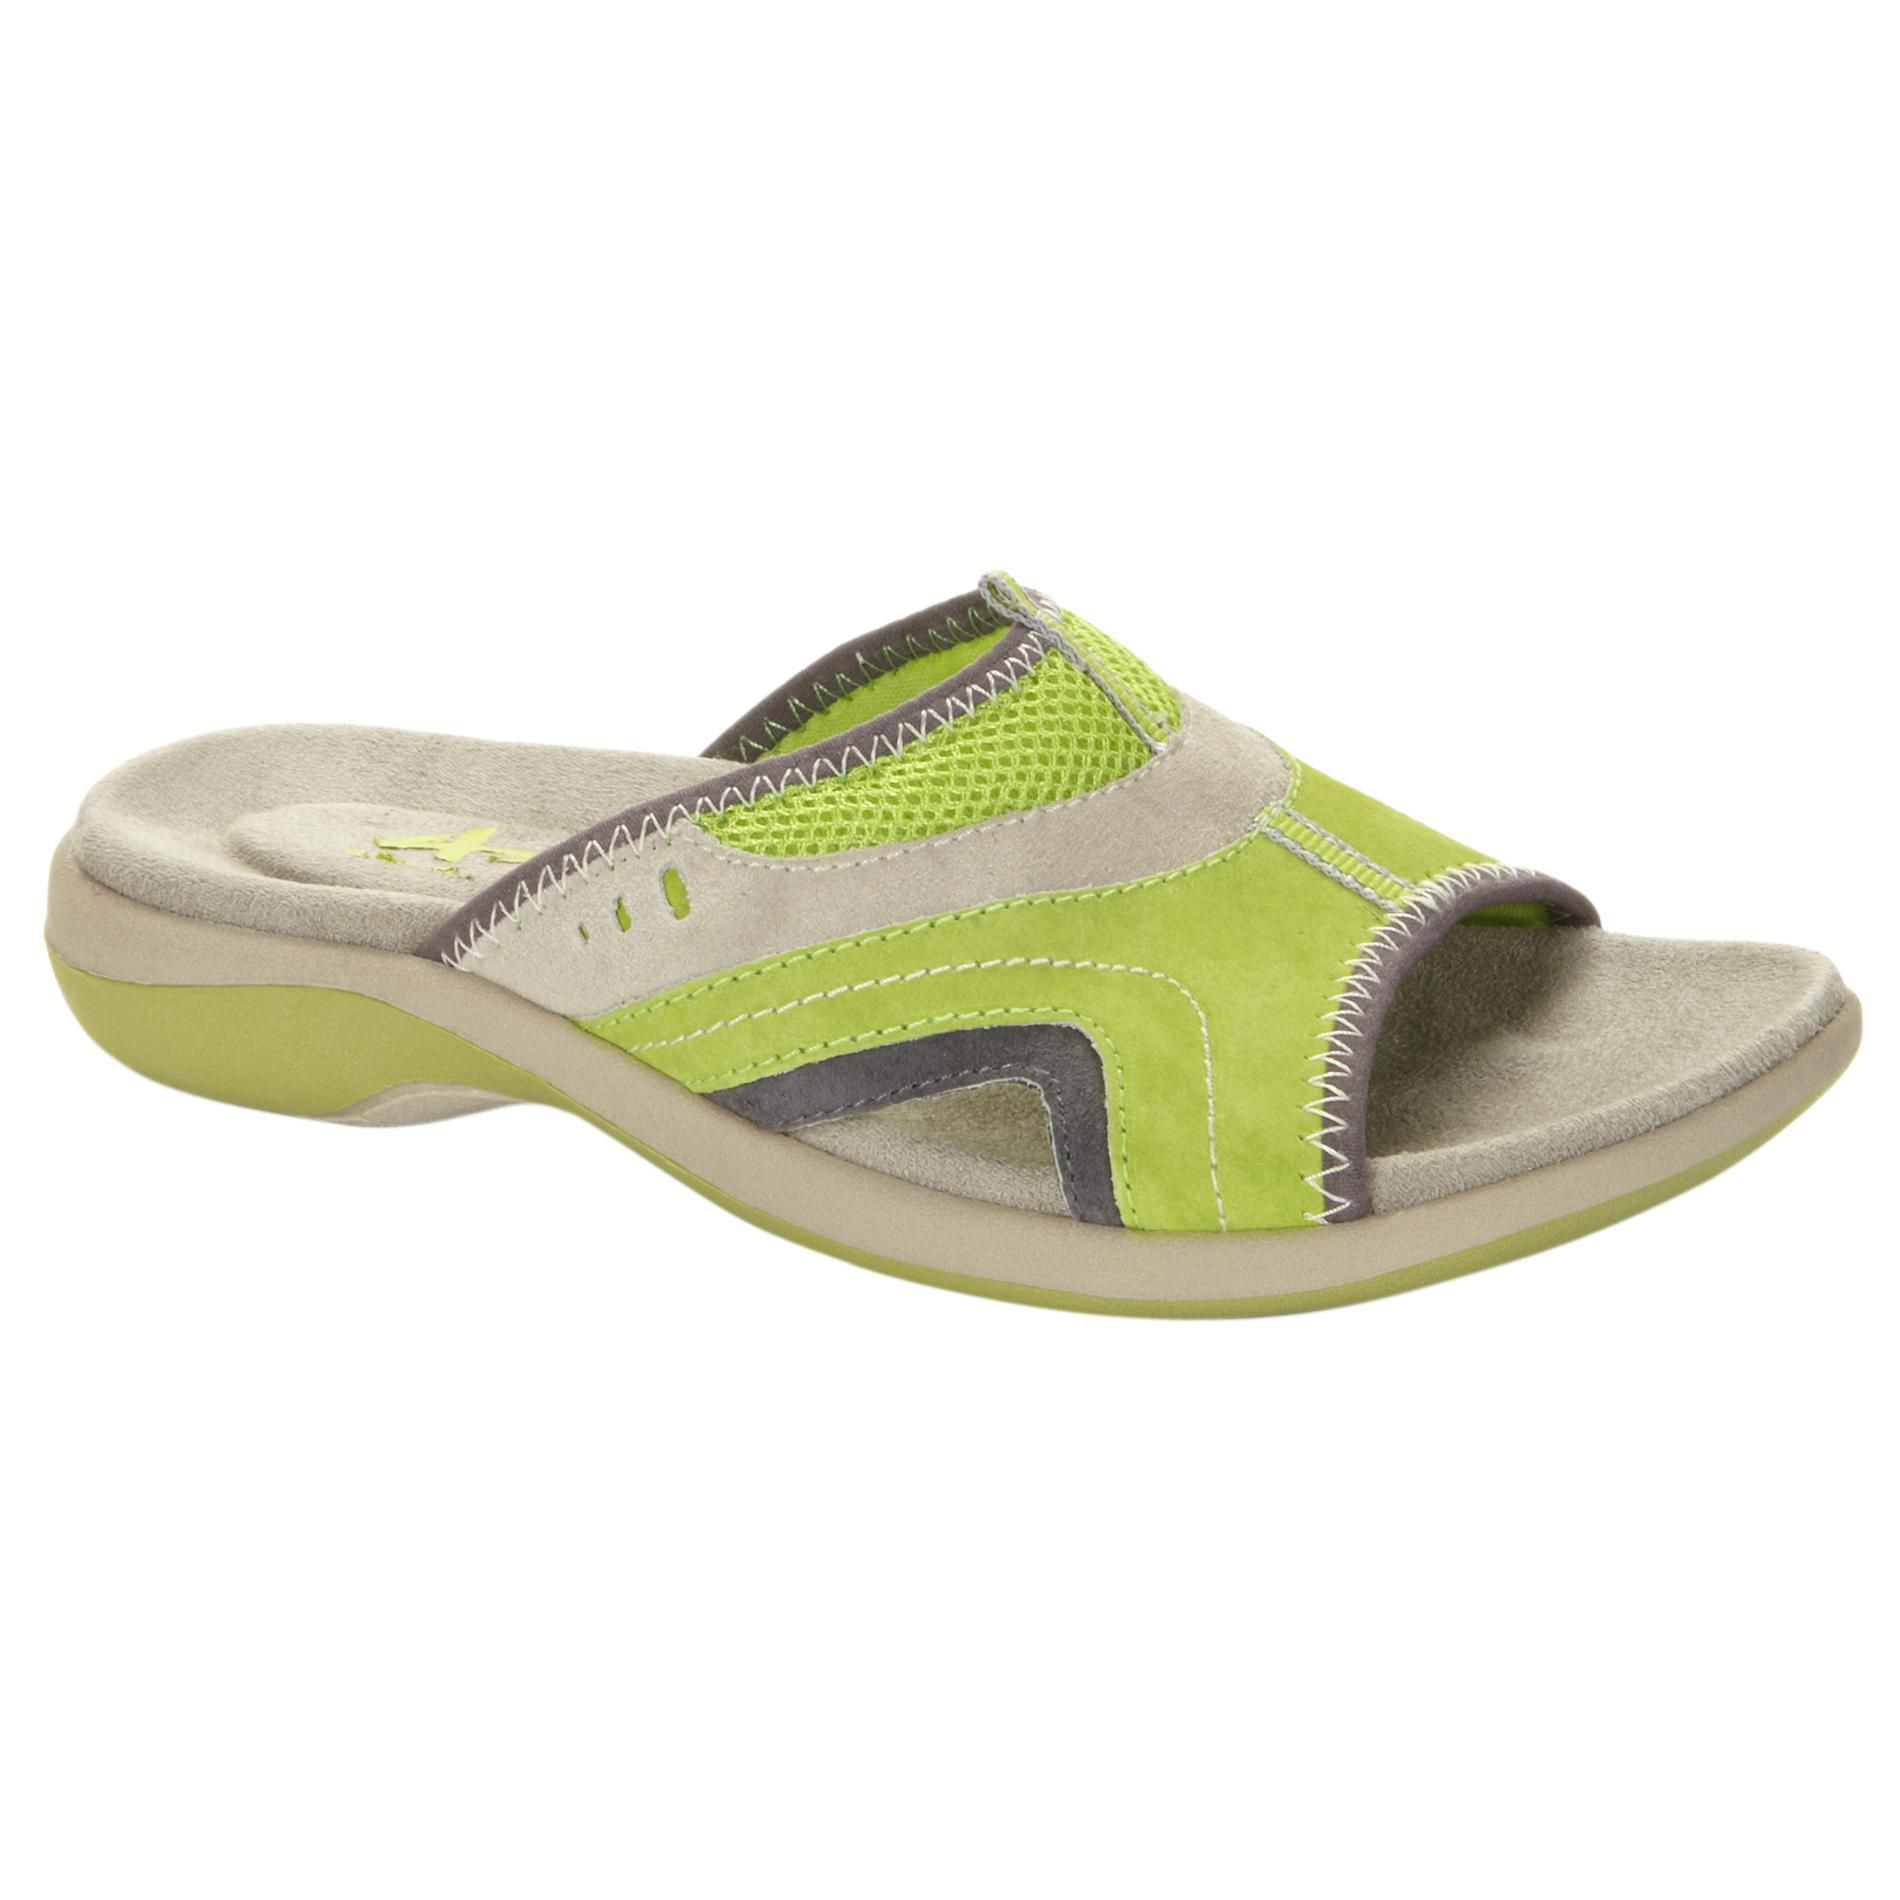 Athletech  Women's Slide Sandal Beverlee